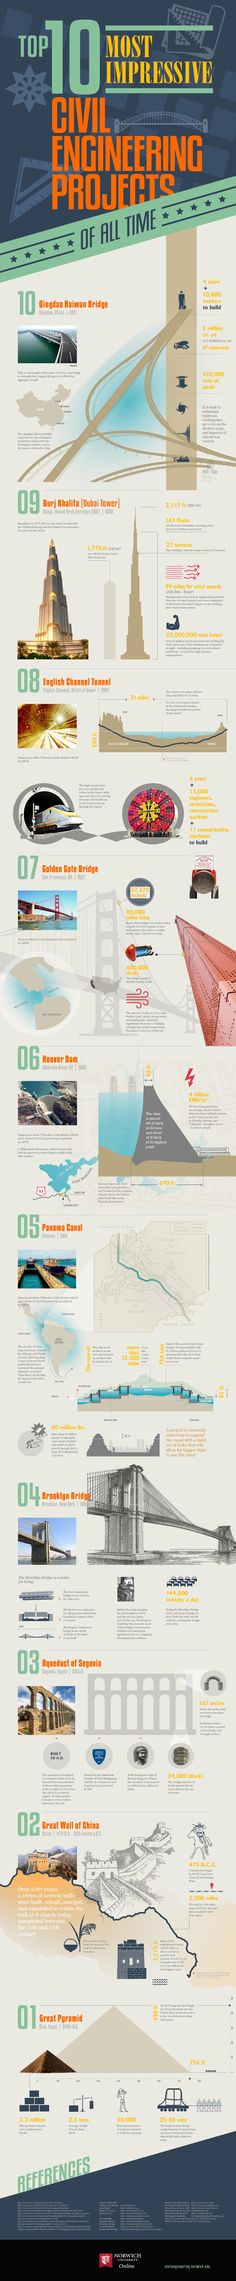 Infographic - Top 10 Most Impressive Civil Engineering Projects of All Time. I want to see all of these!!!